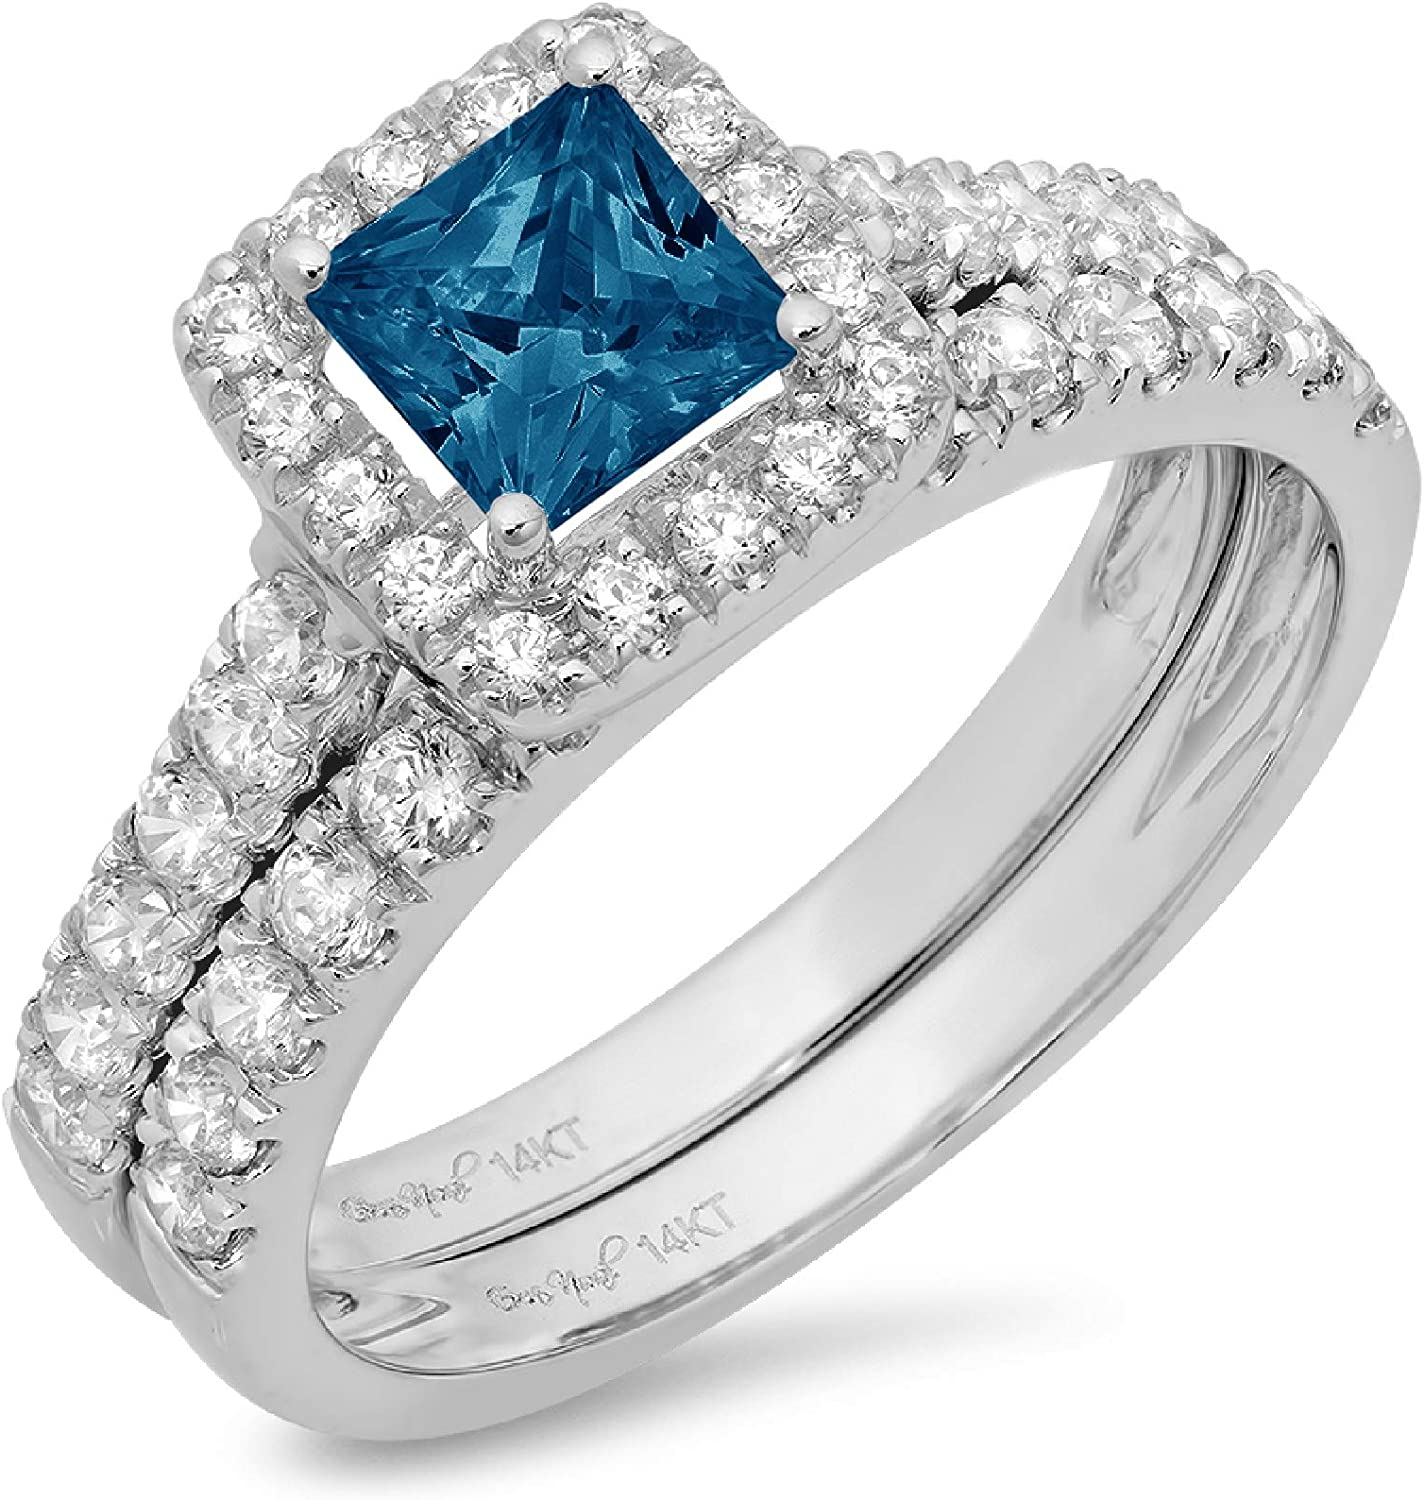 1.60ct Princess Cut Halo Pave Solitaire Accent Natural London Blue Topaz Engagement Promise Statement Anniversary Bridal Wedding Ring Band set Real Solid 14k White Gold